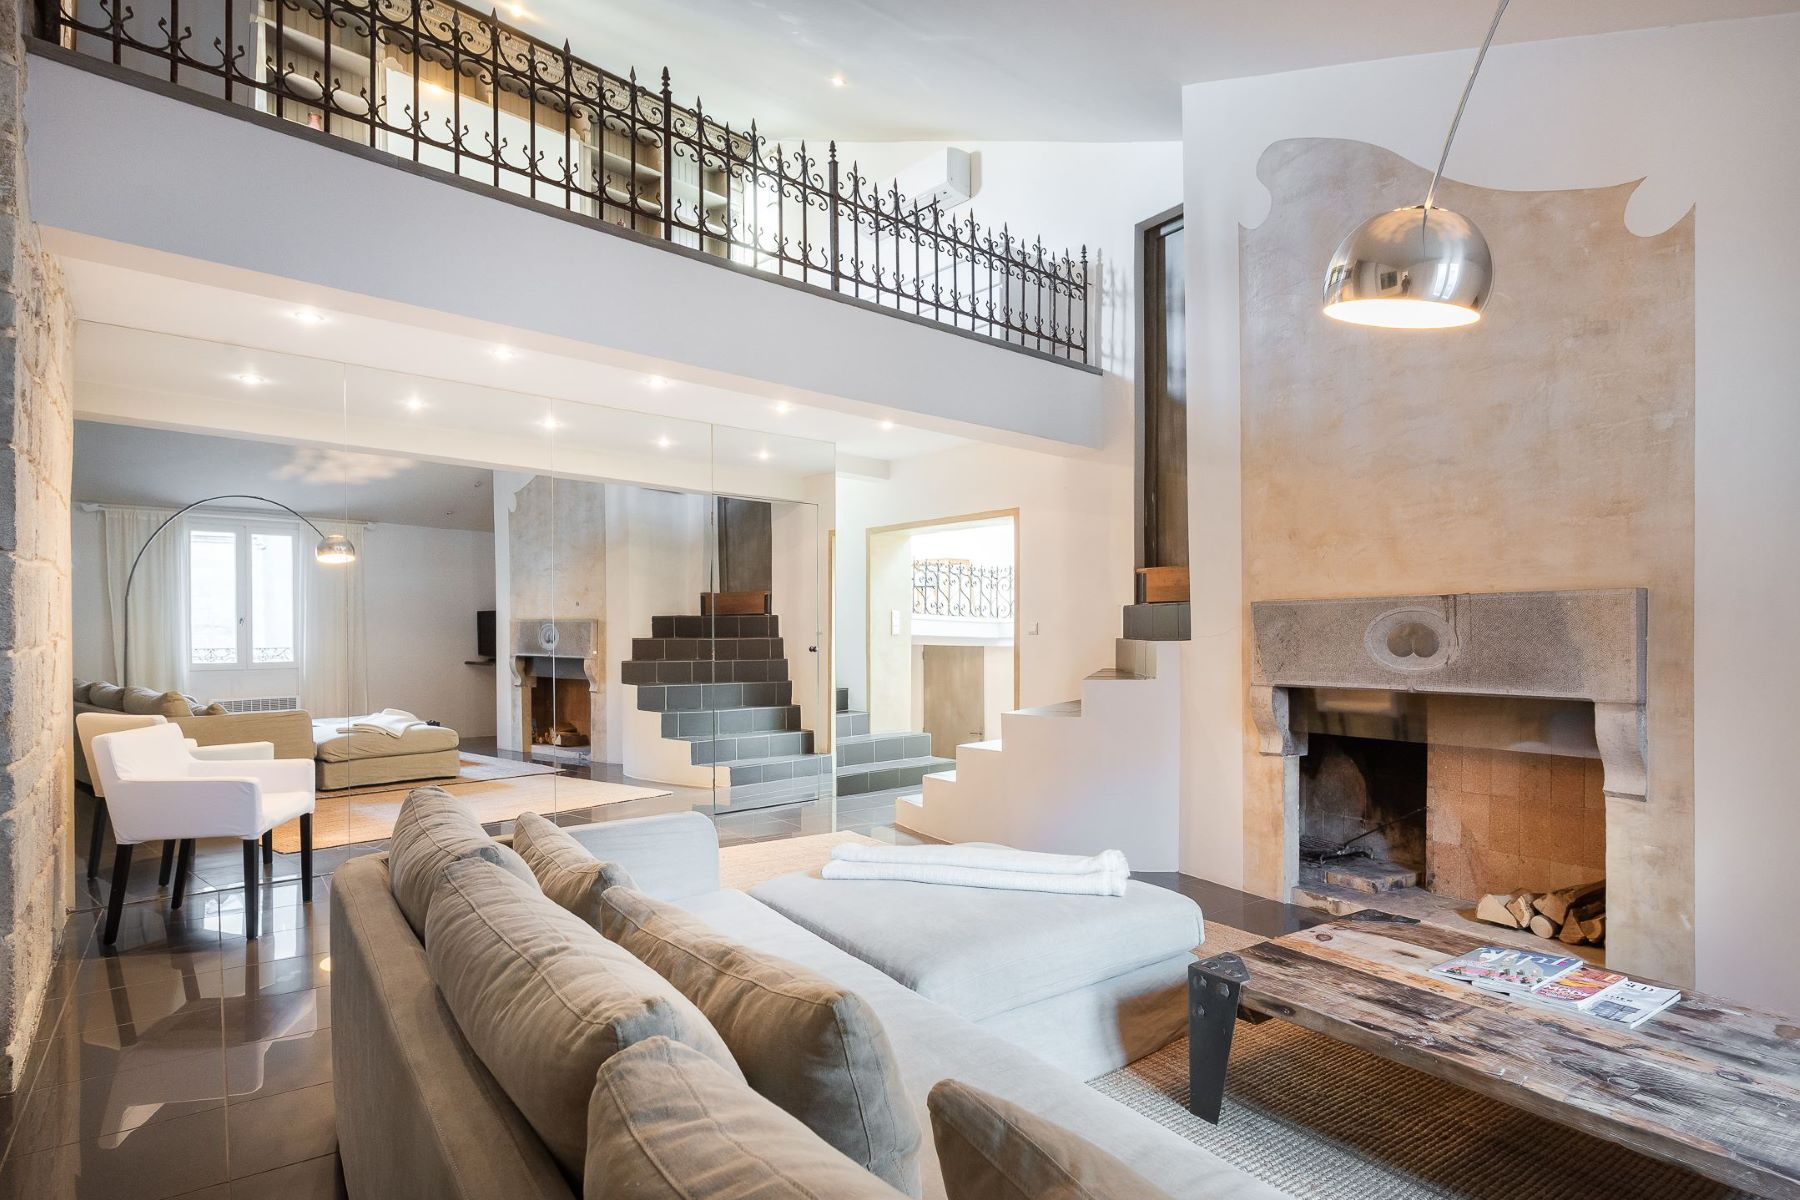 Apartments for Sale at Montpellier, Elegant flat refurbished Montpellier, Languedoc-Roussillon 34000 France